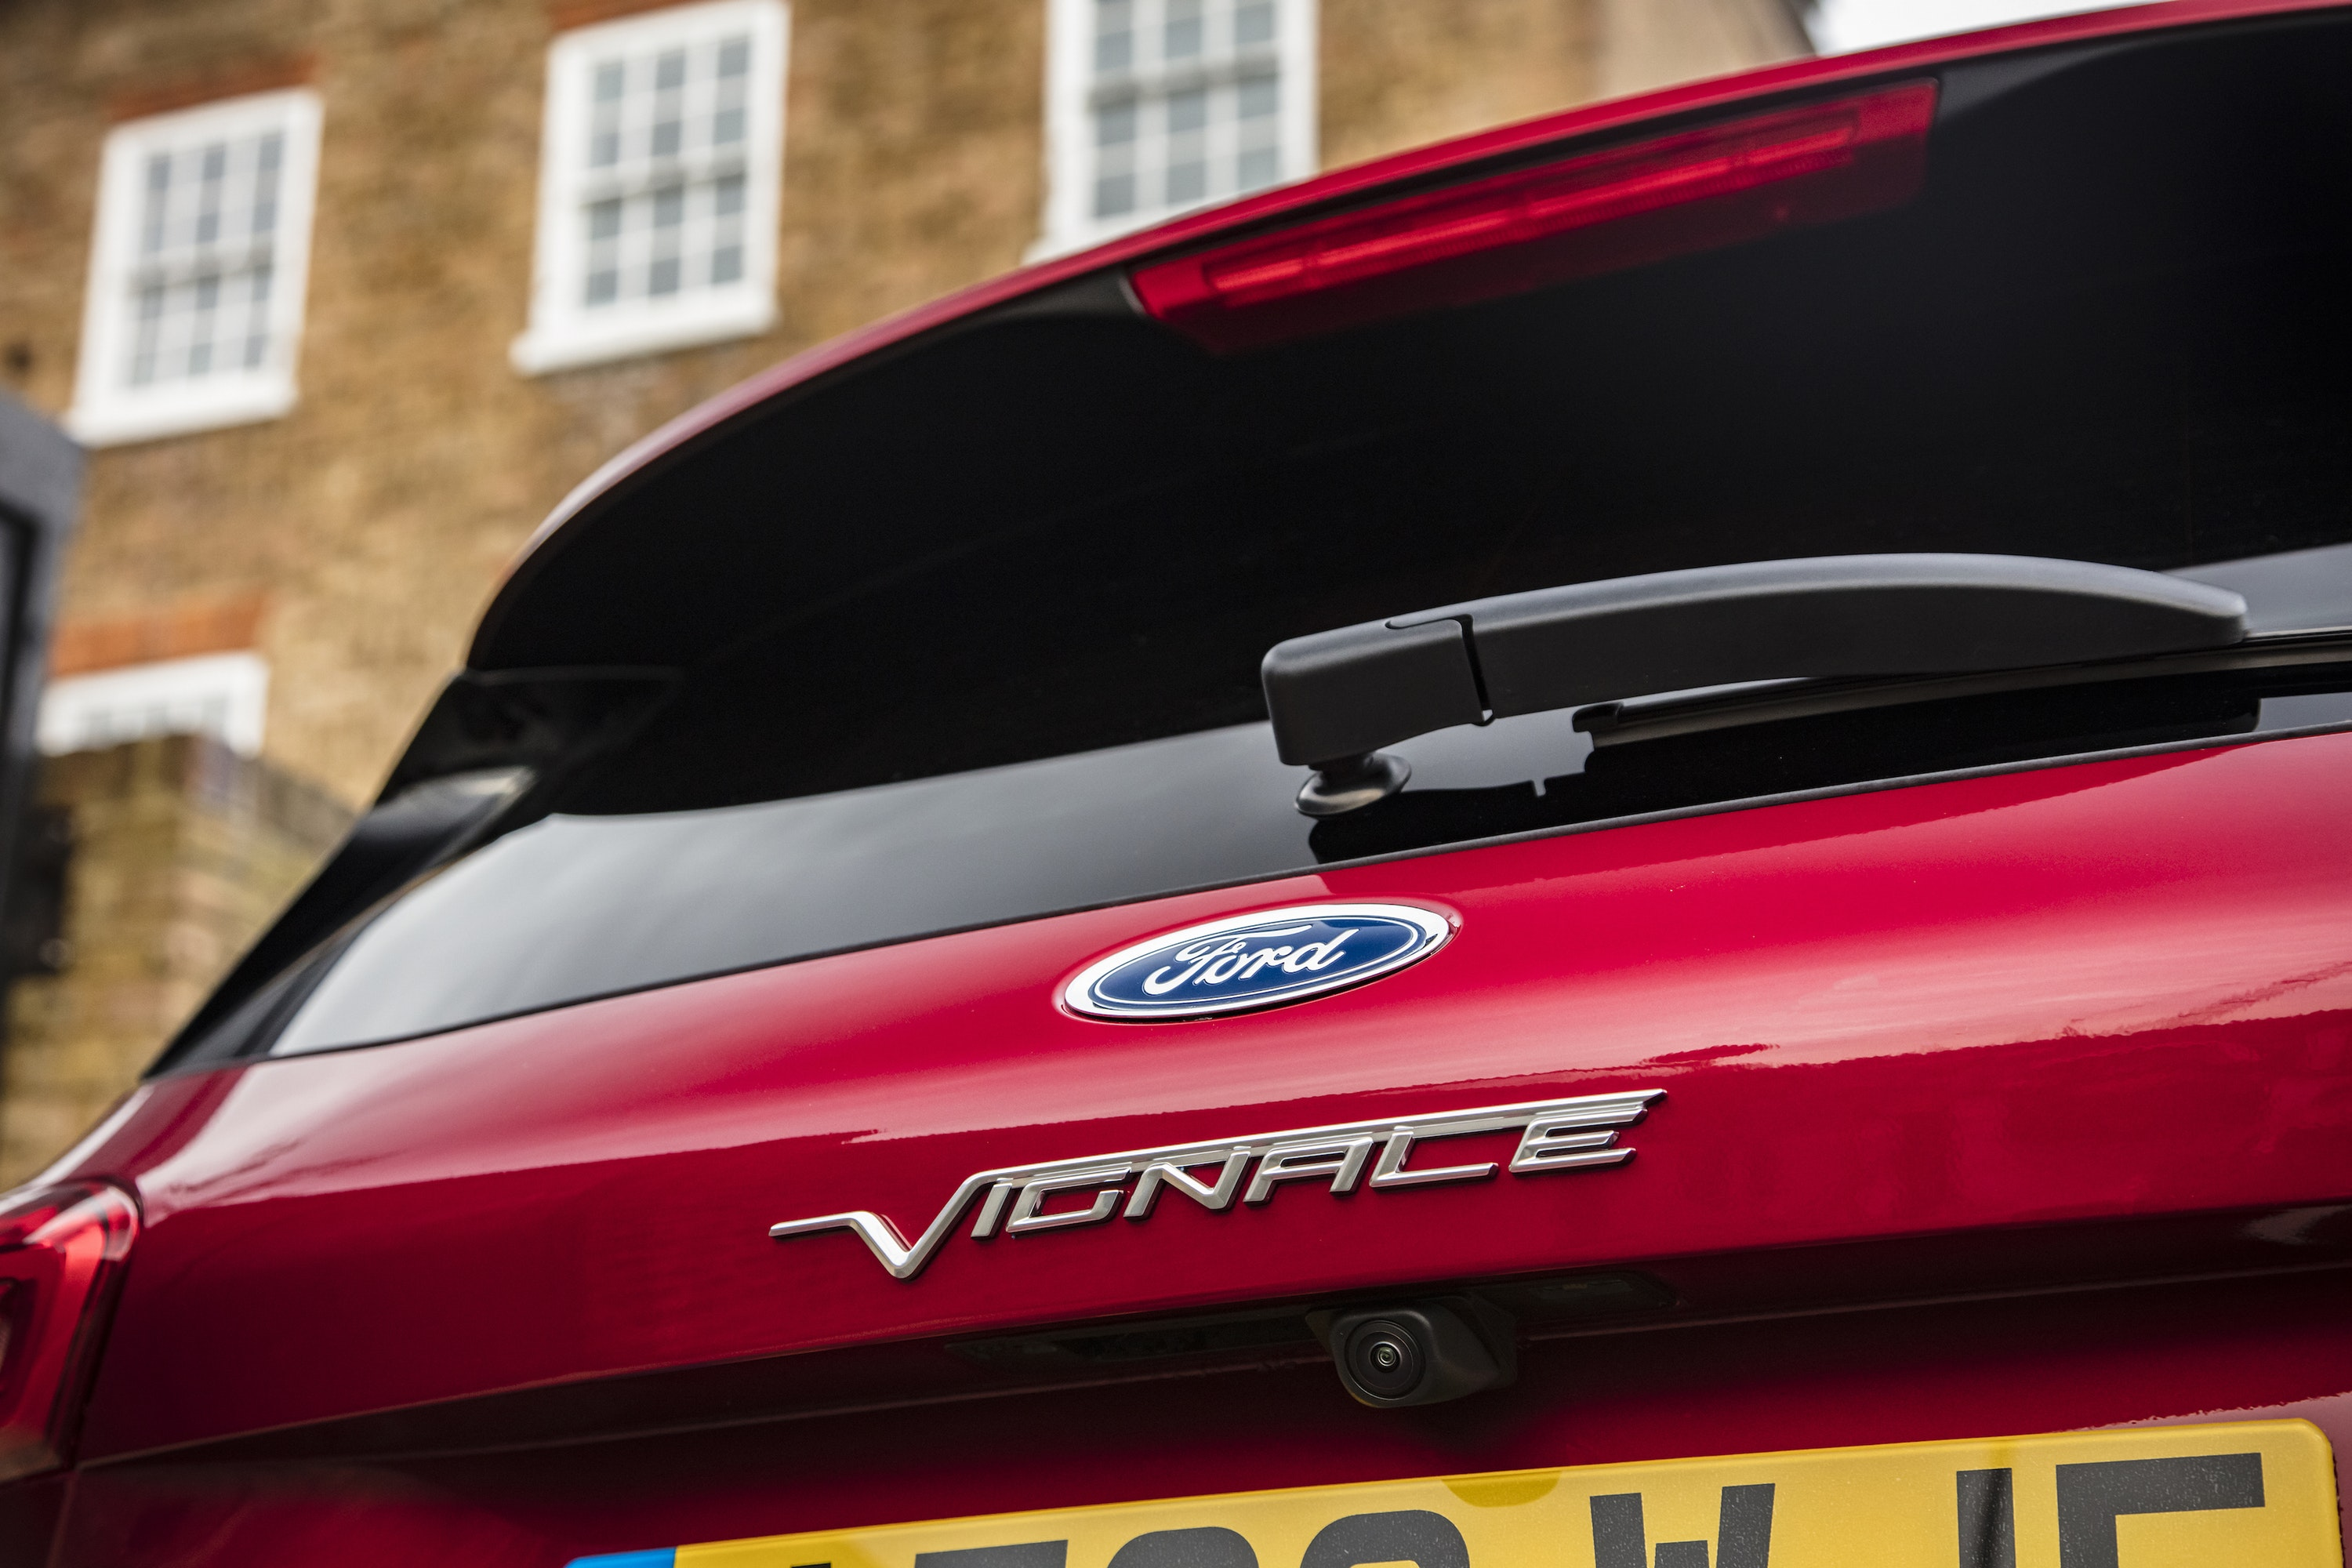 Close up of rear of Ford Focus Vignale